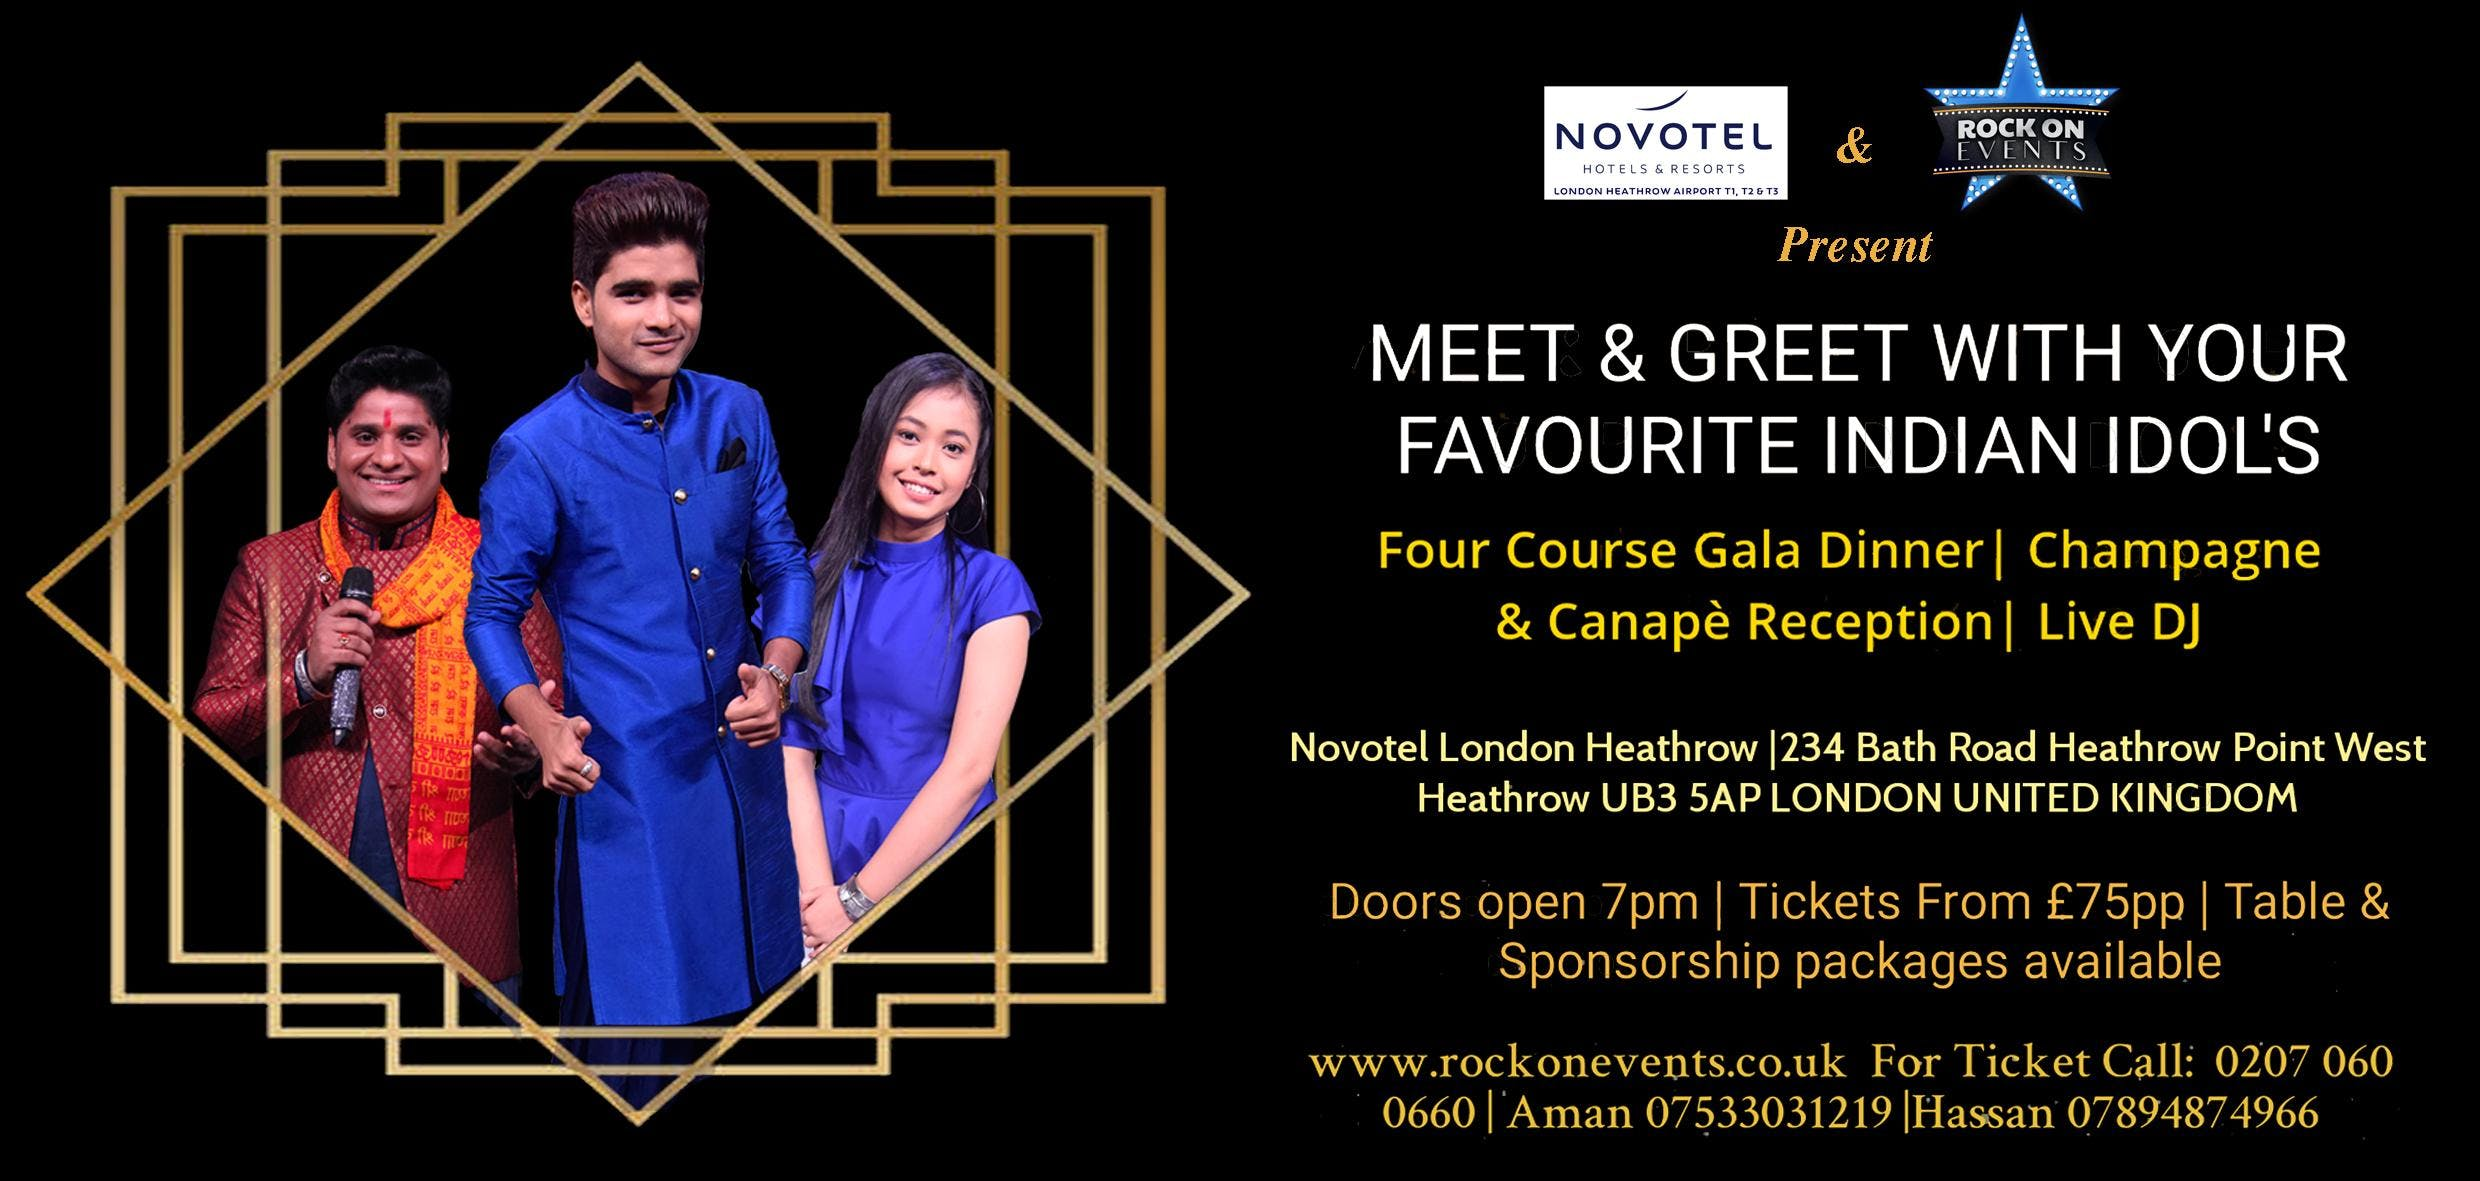 Indian Idol Stars - Meet & Greet - 4 Course G